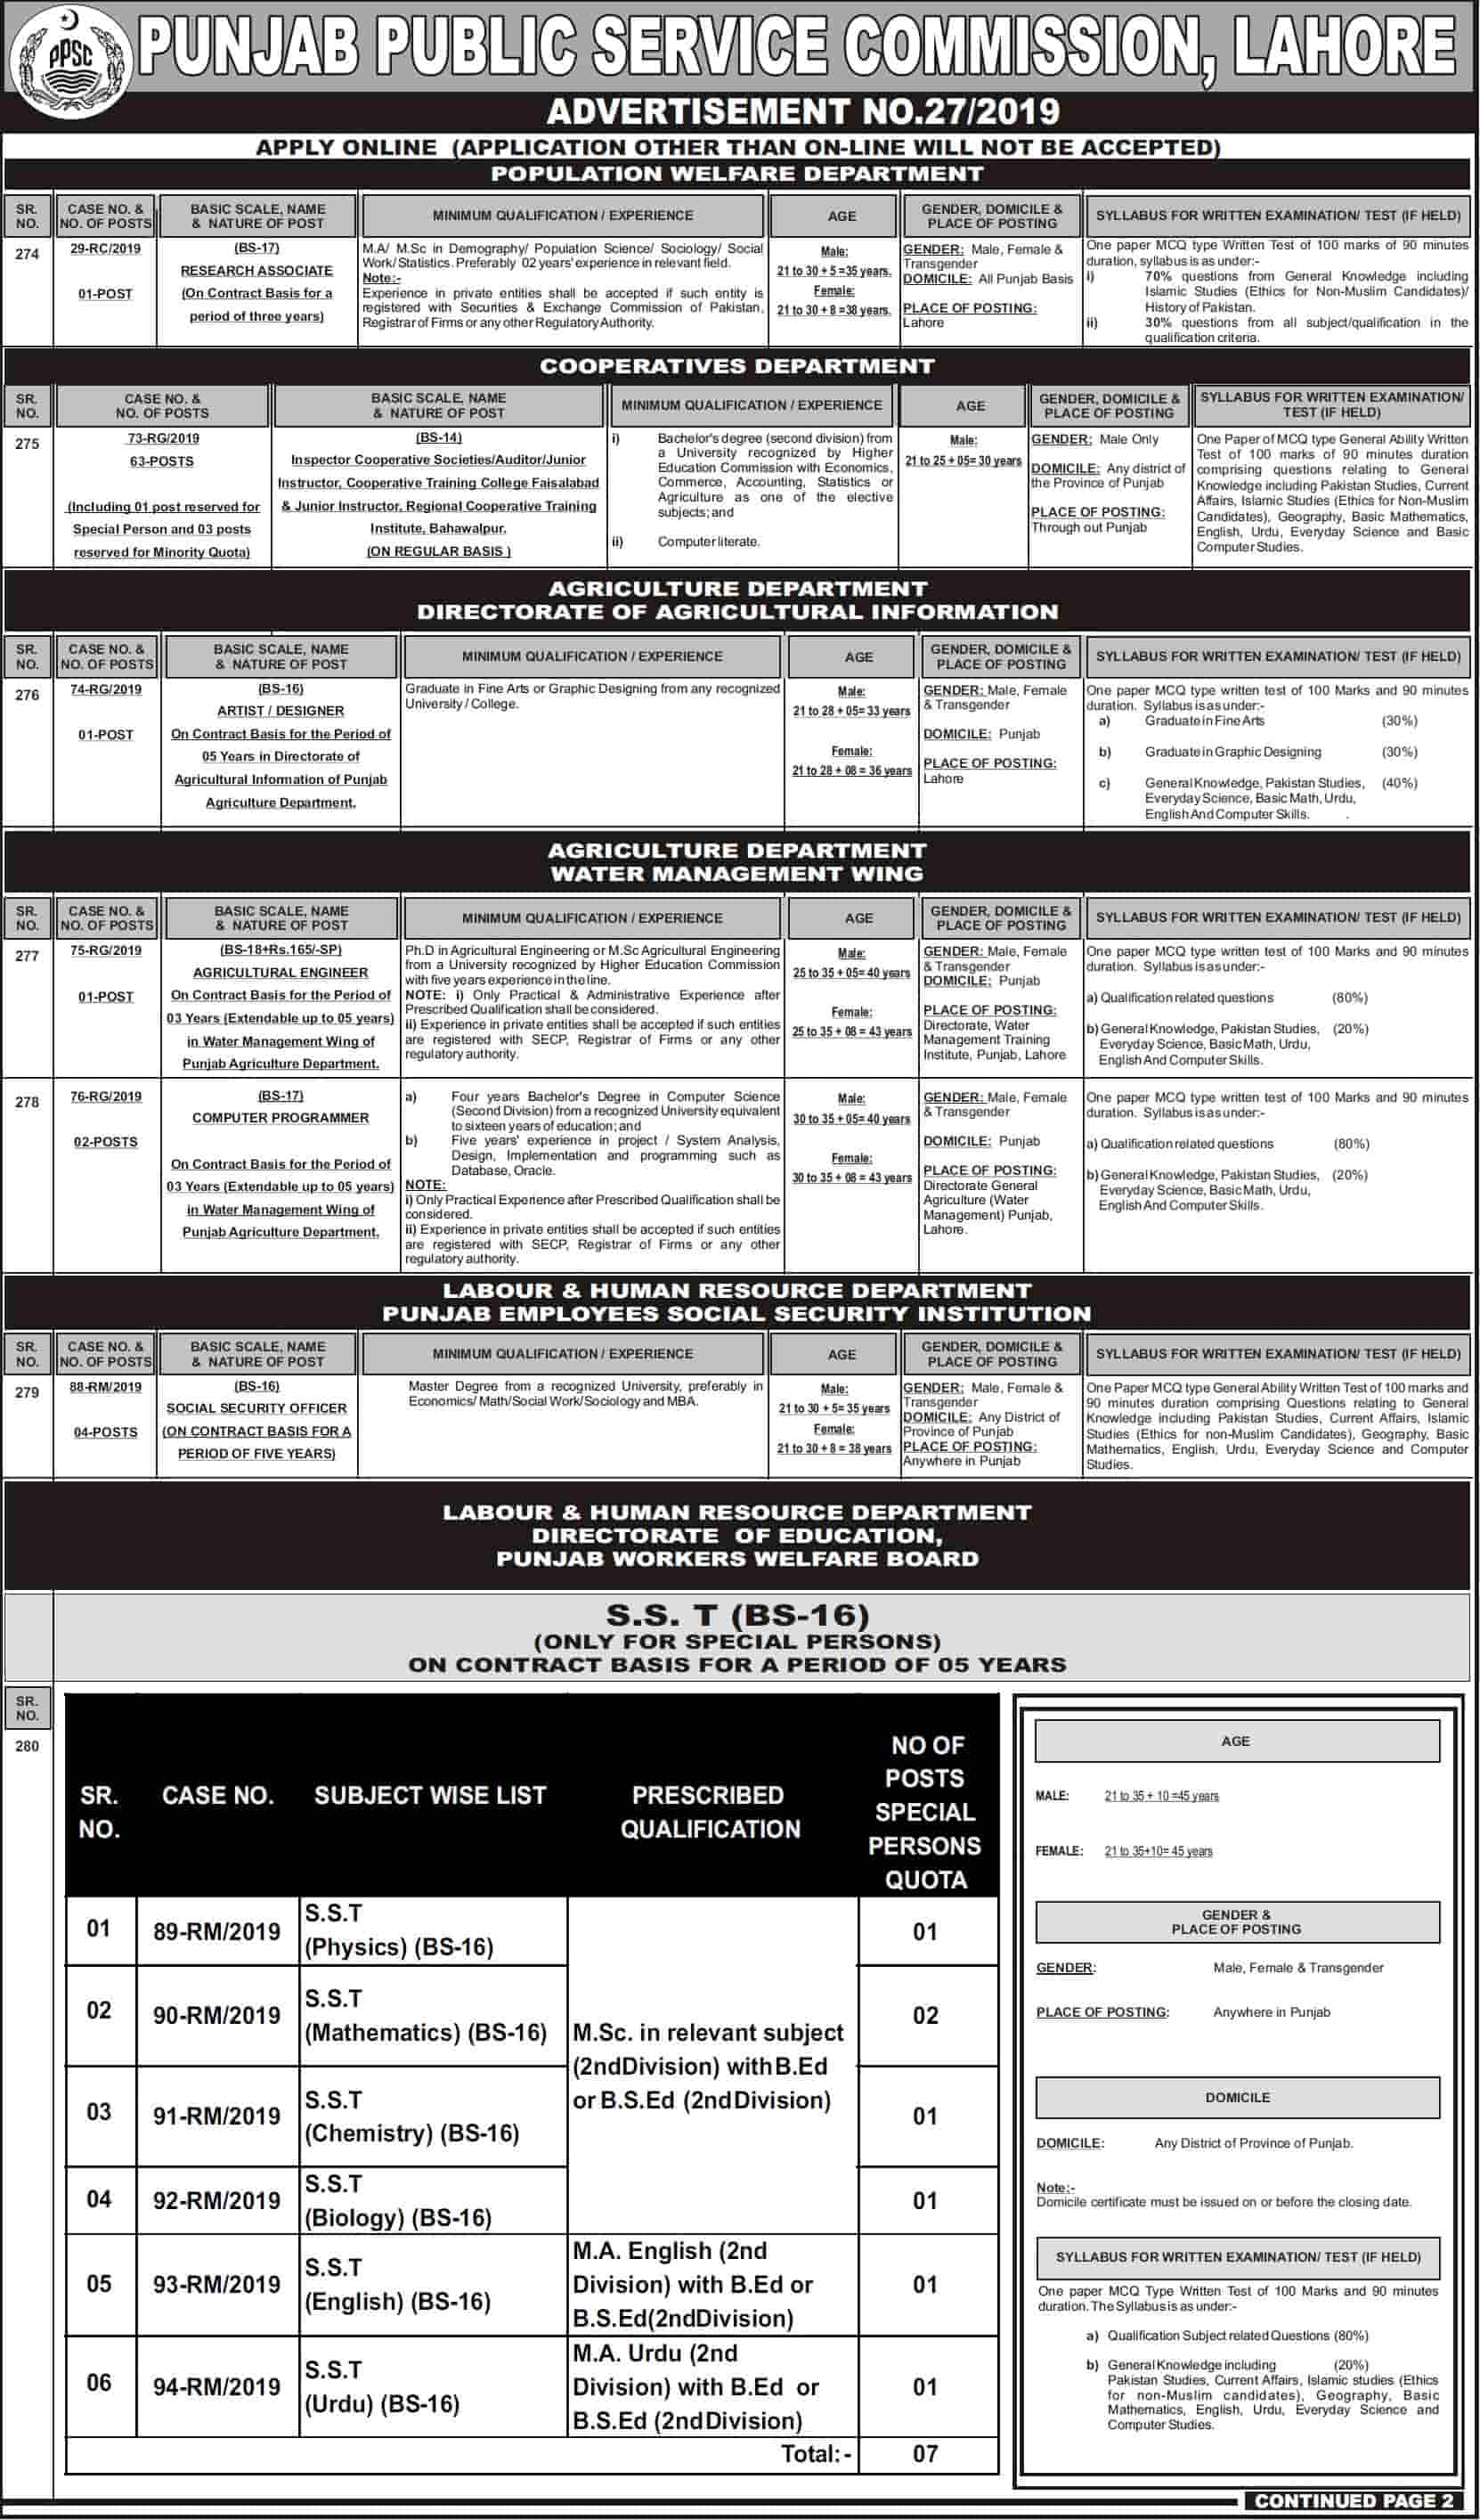 PPSC New Jobs Today Advertisement No 27 2019 Apply Online - Filectory